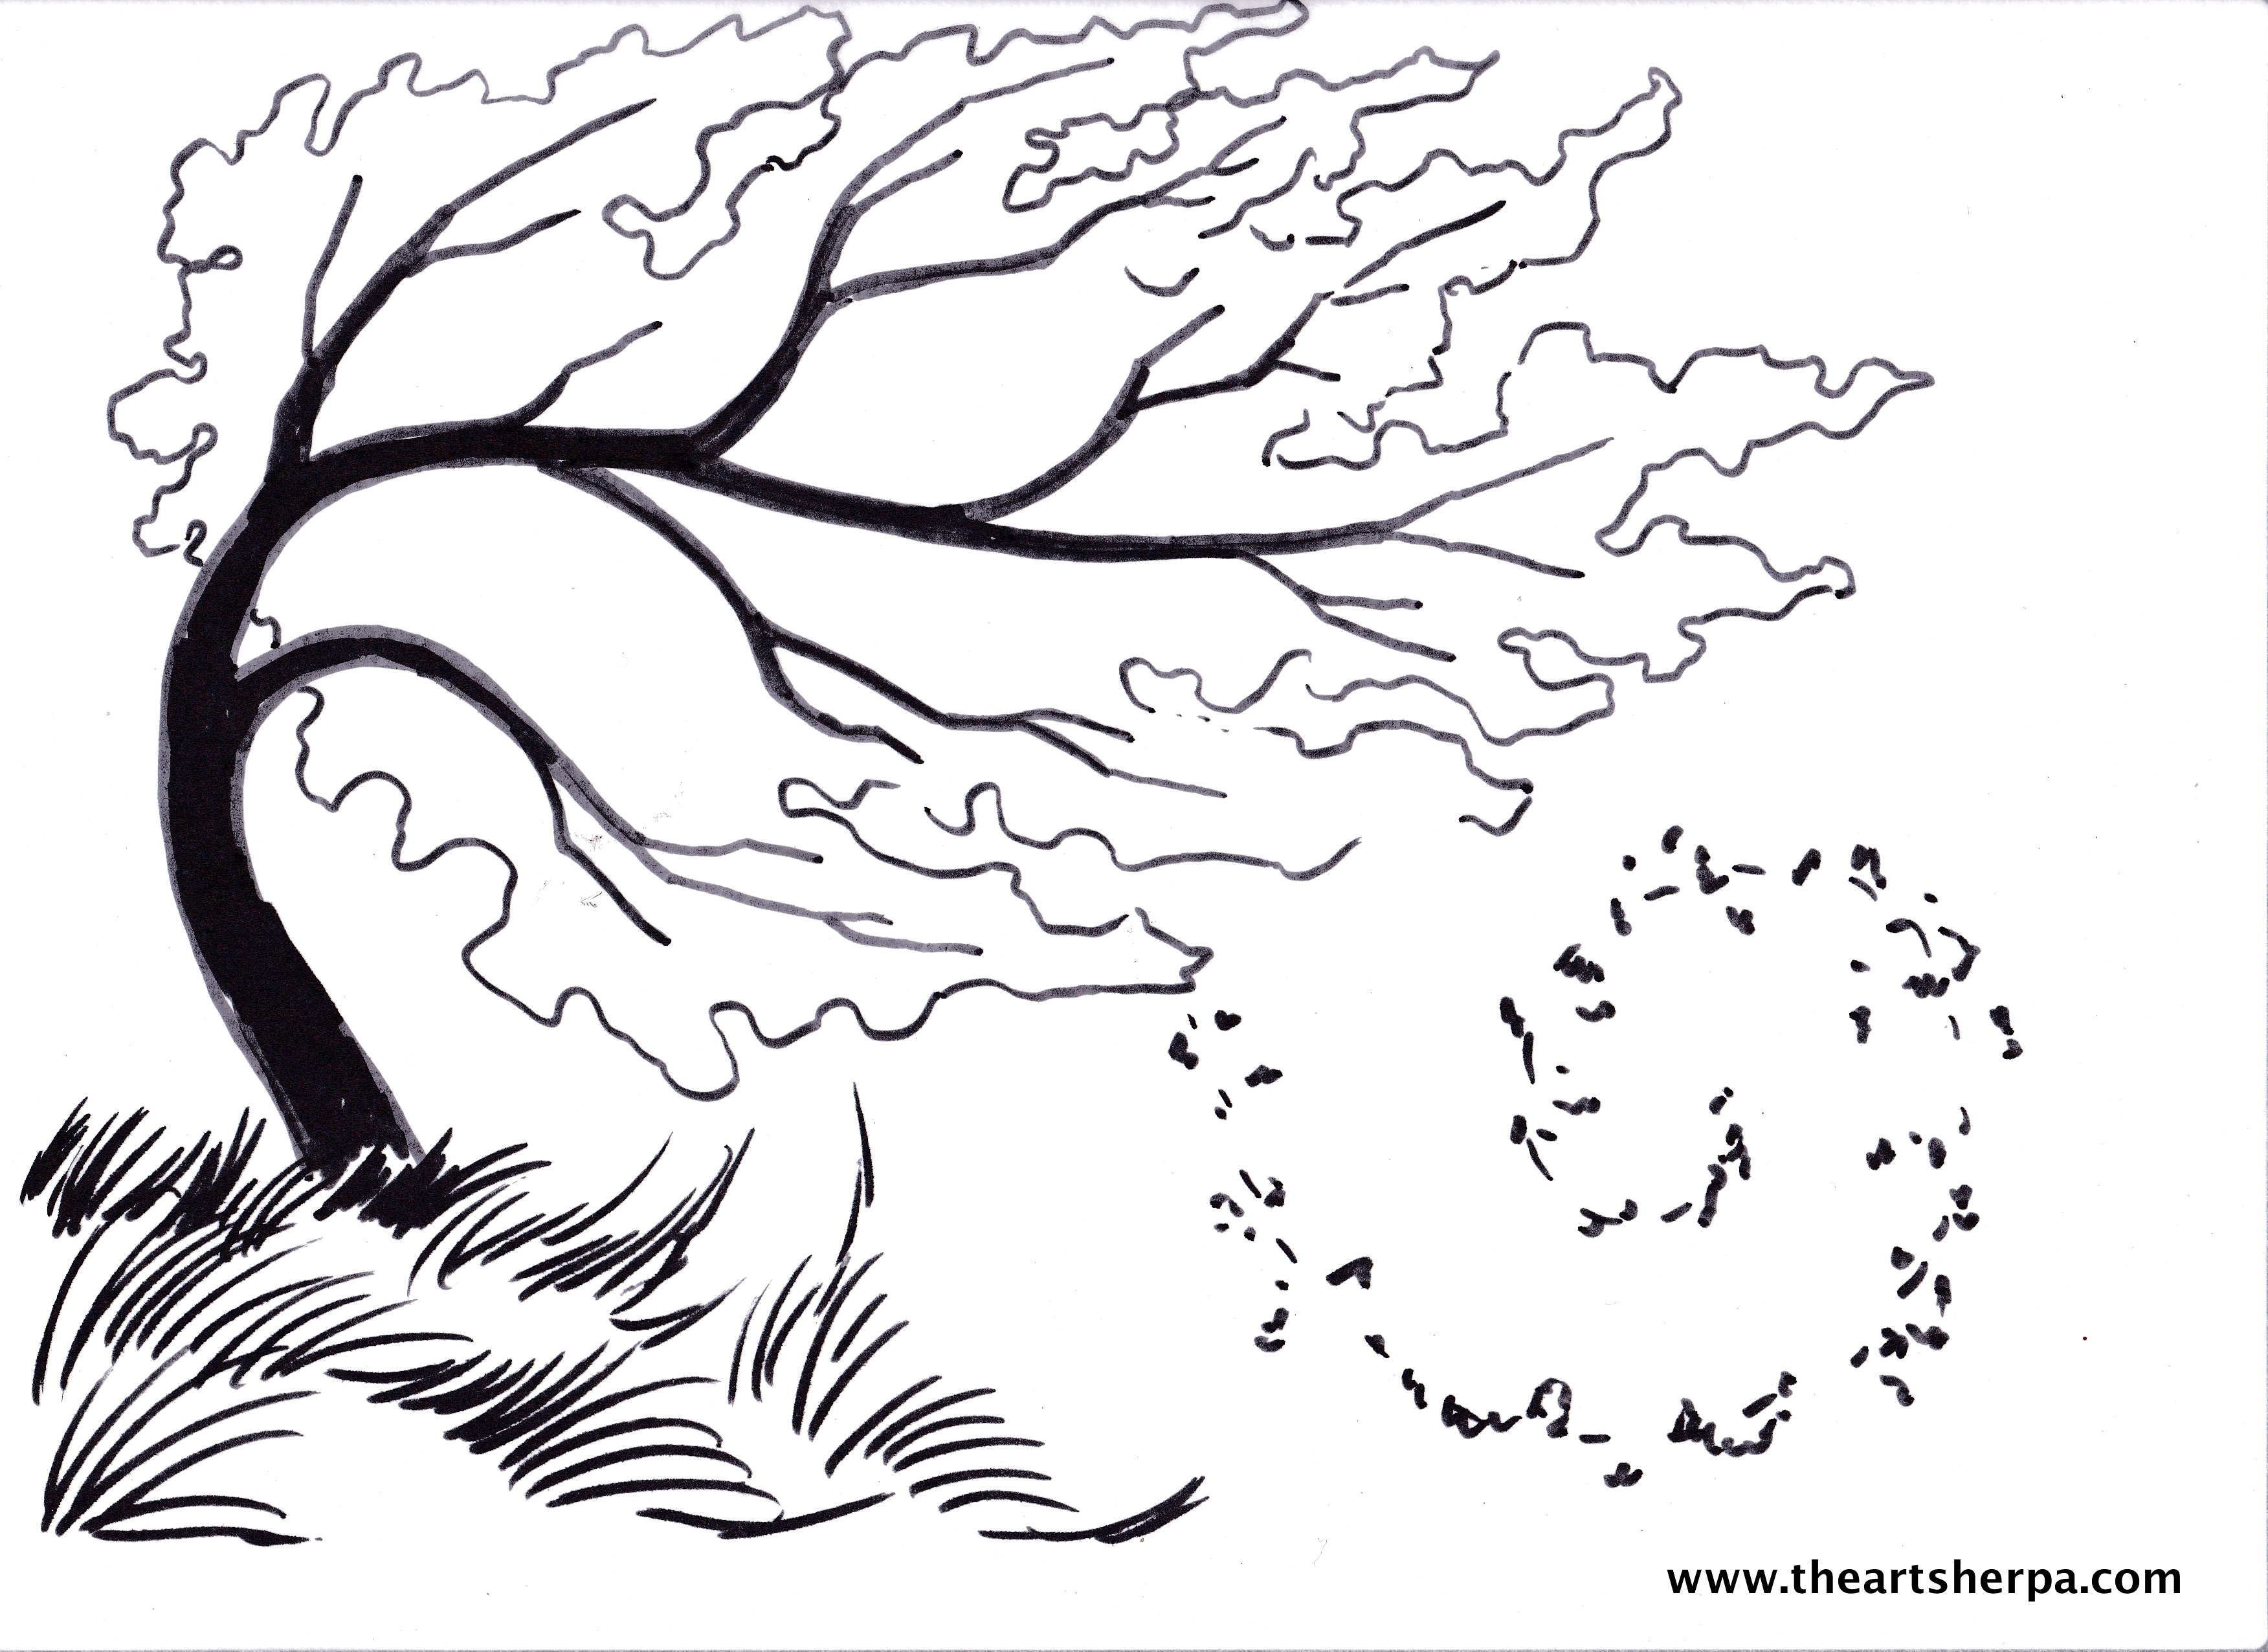 3504x2552 Birch Tree Blowing In The Wind For The Youtube Art Sherpa Full